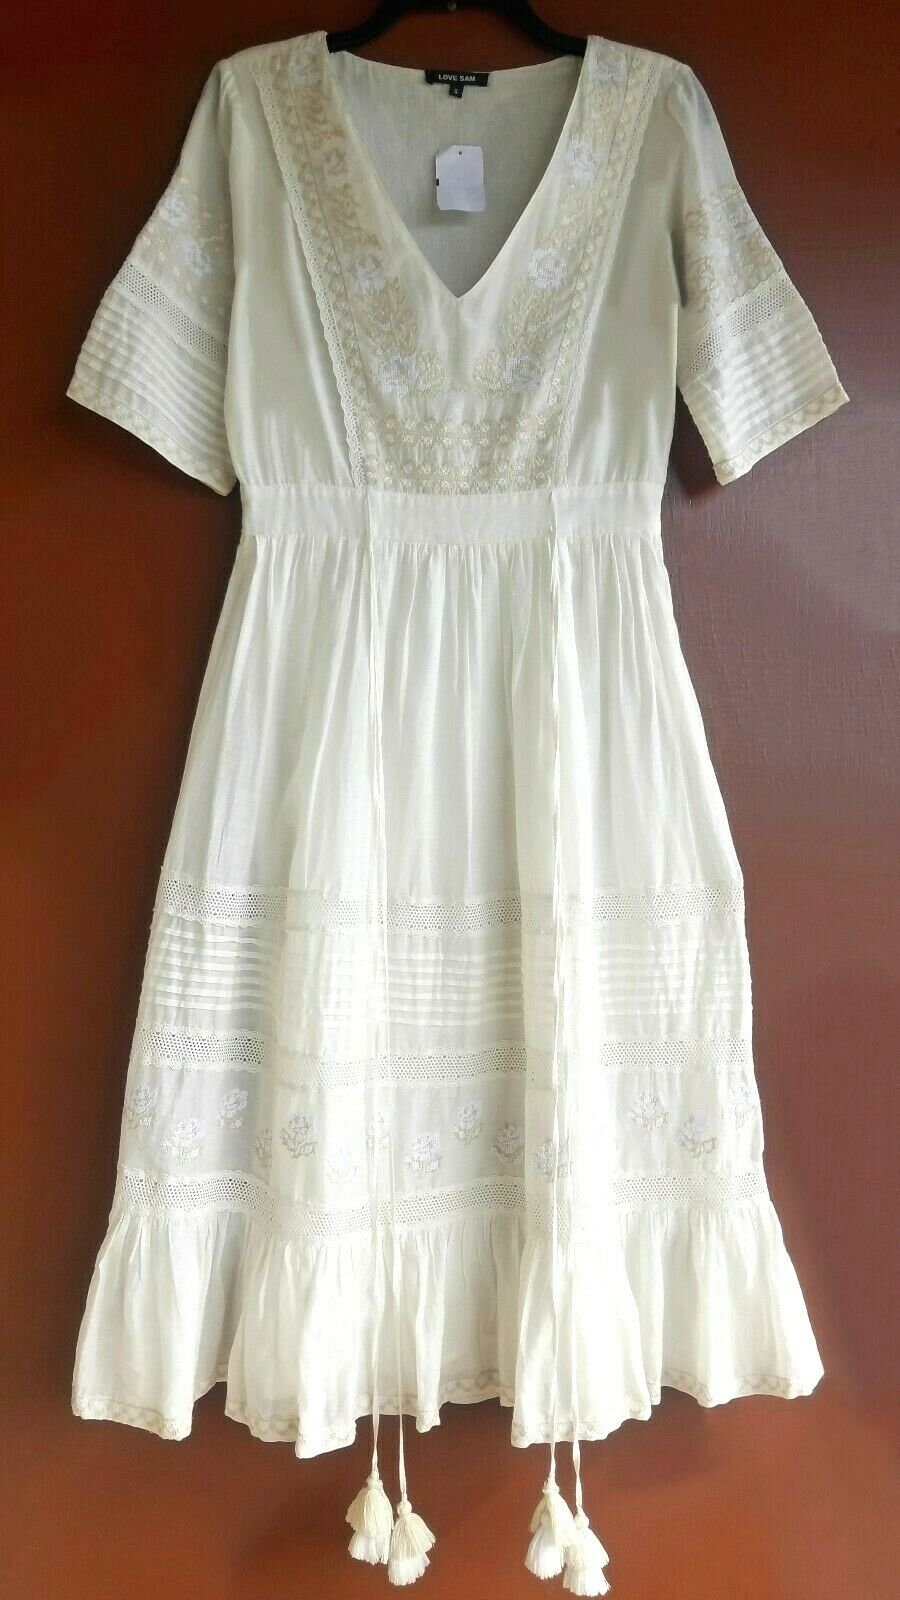 NWT KÄRLEK SAM Ivory Tasseled Embröded Cotton Peasant Midi S Dress Detal  295